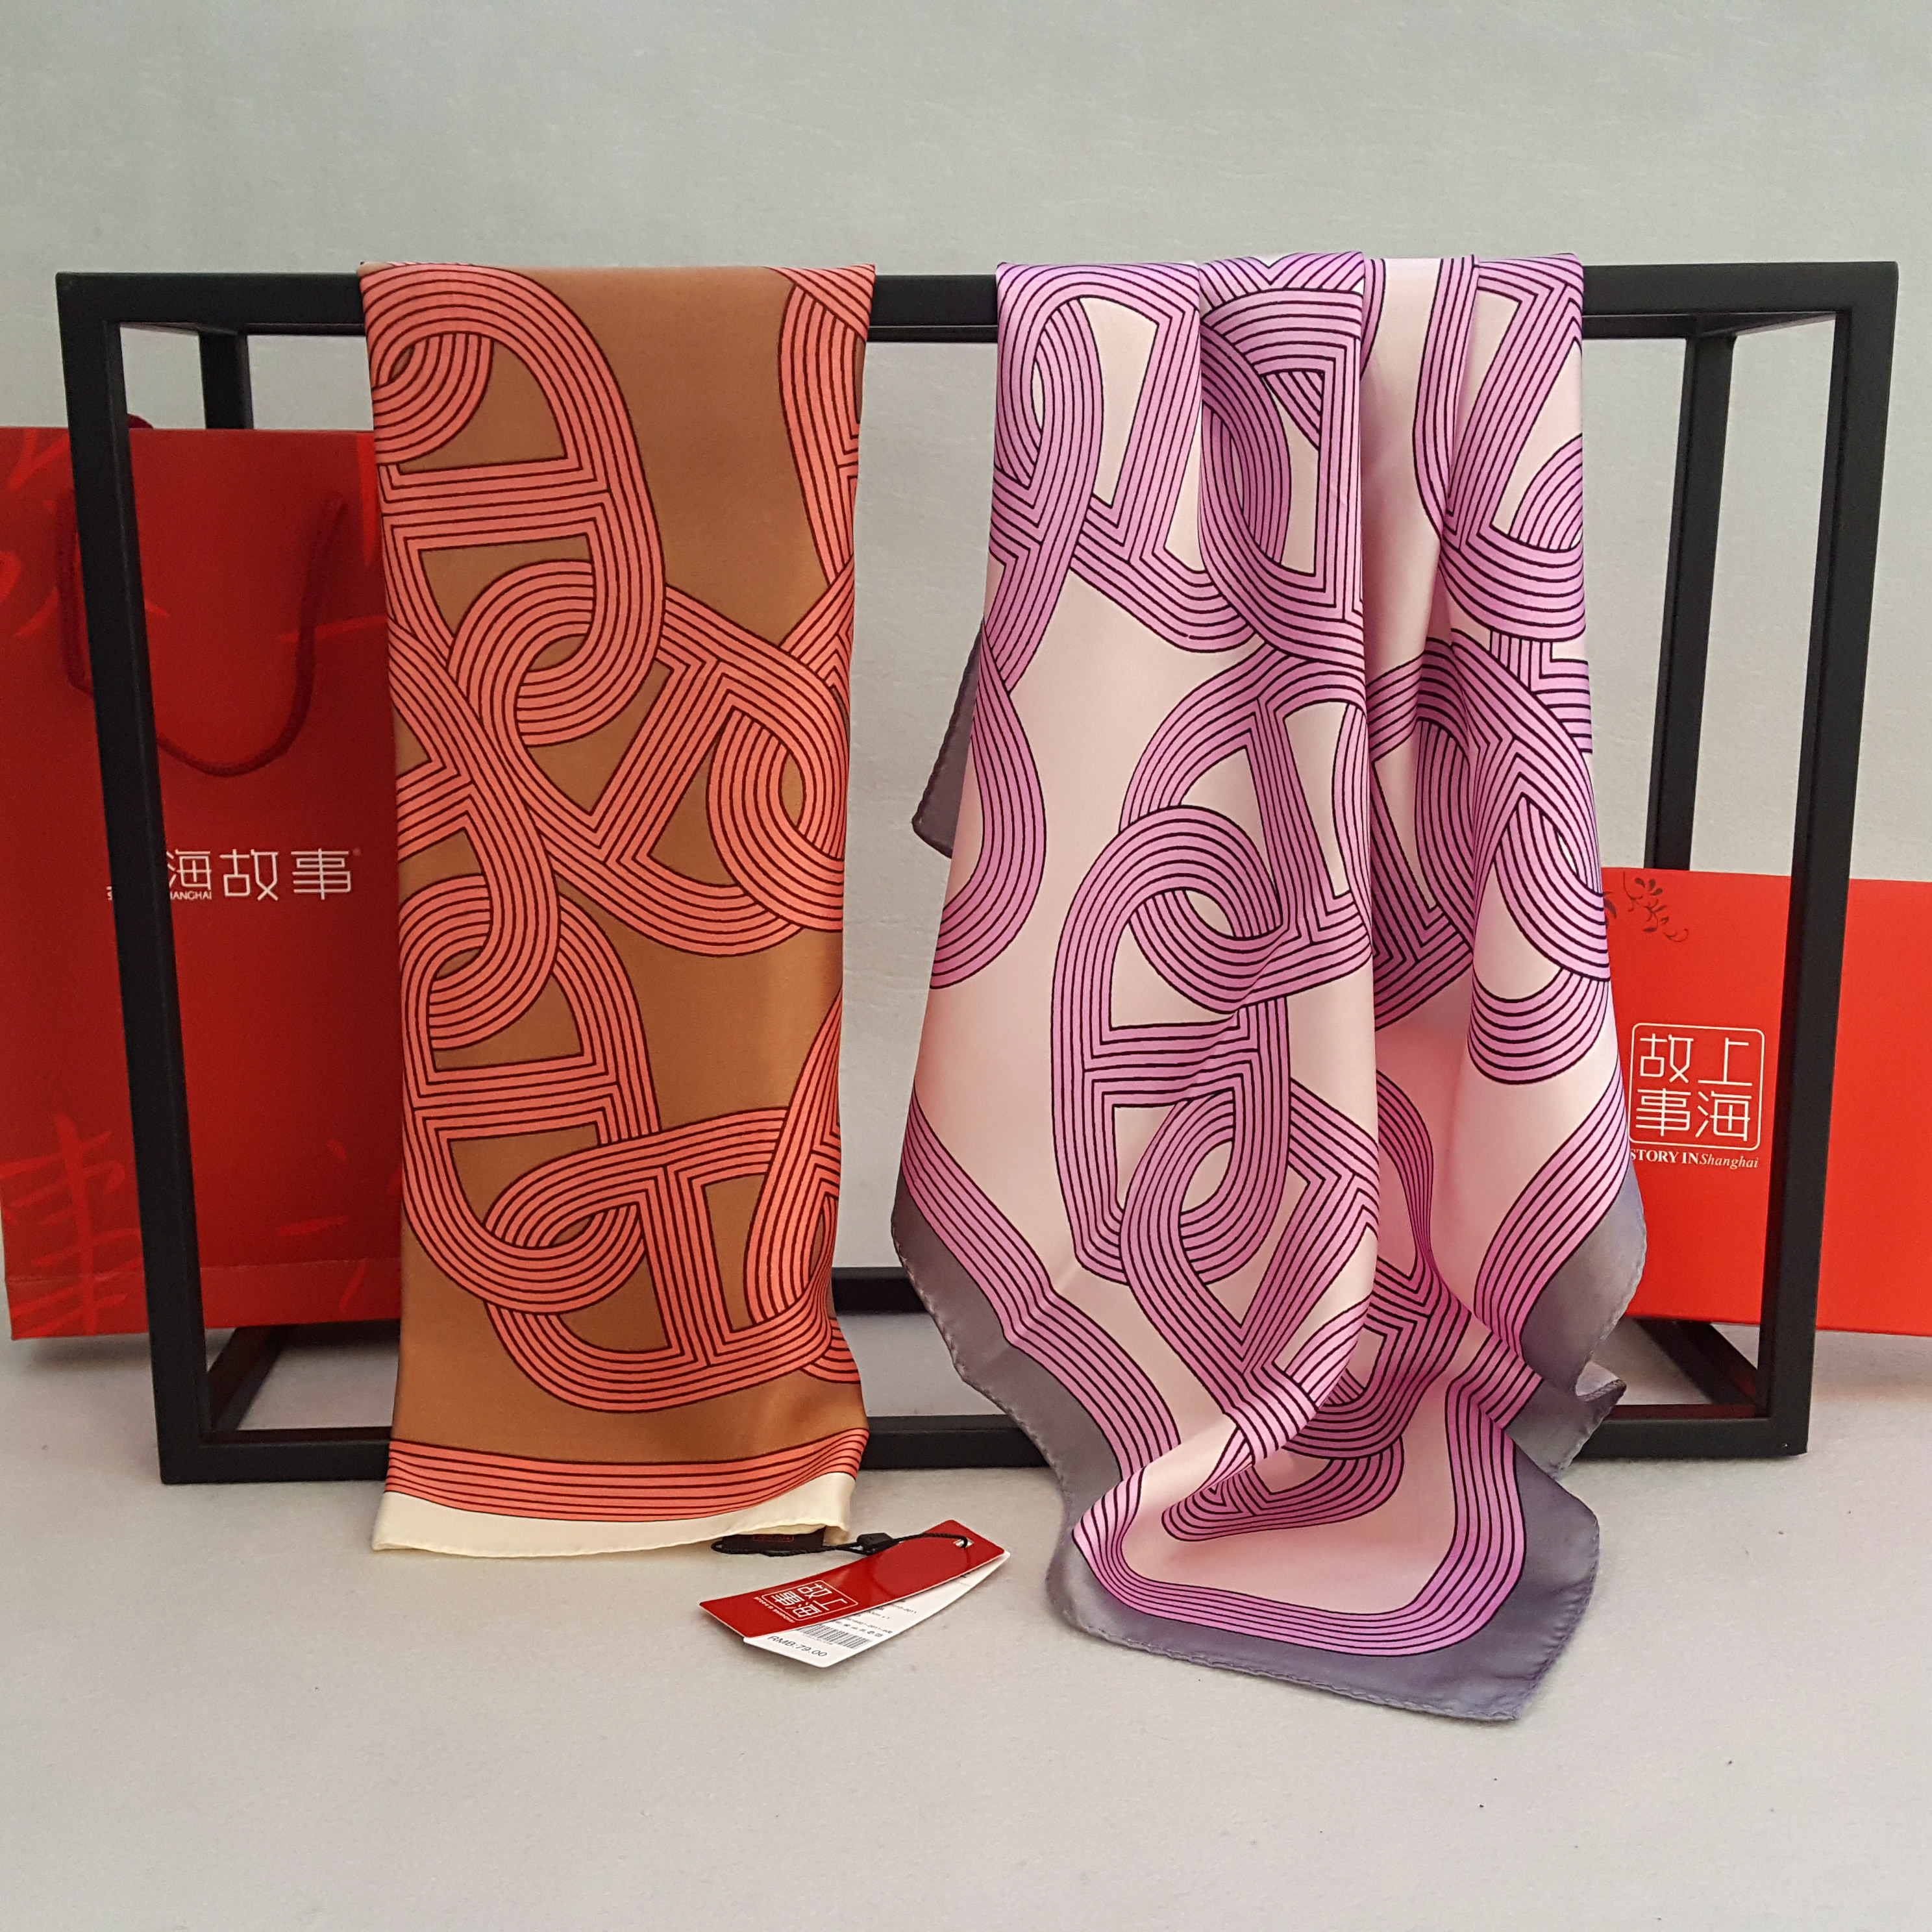 Two parcels of Shanghai stories silk real silk scarves small square scarves womens spring and autumn professional real silk scarves ring buckle